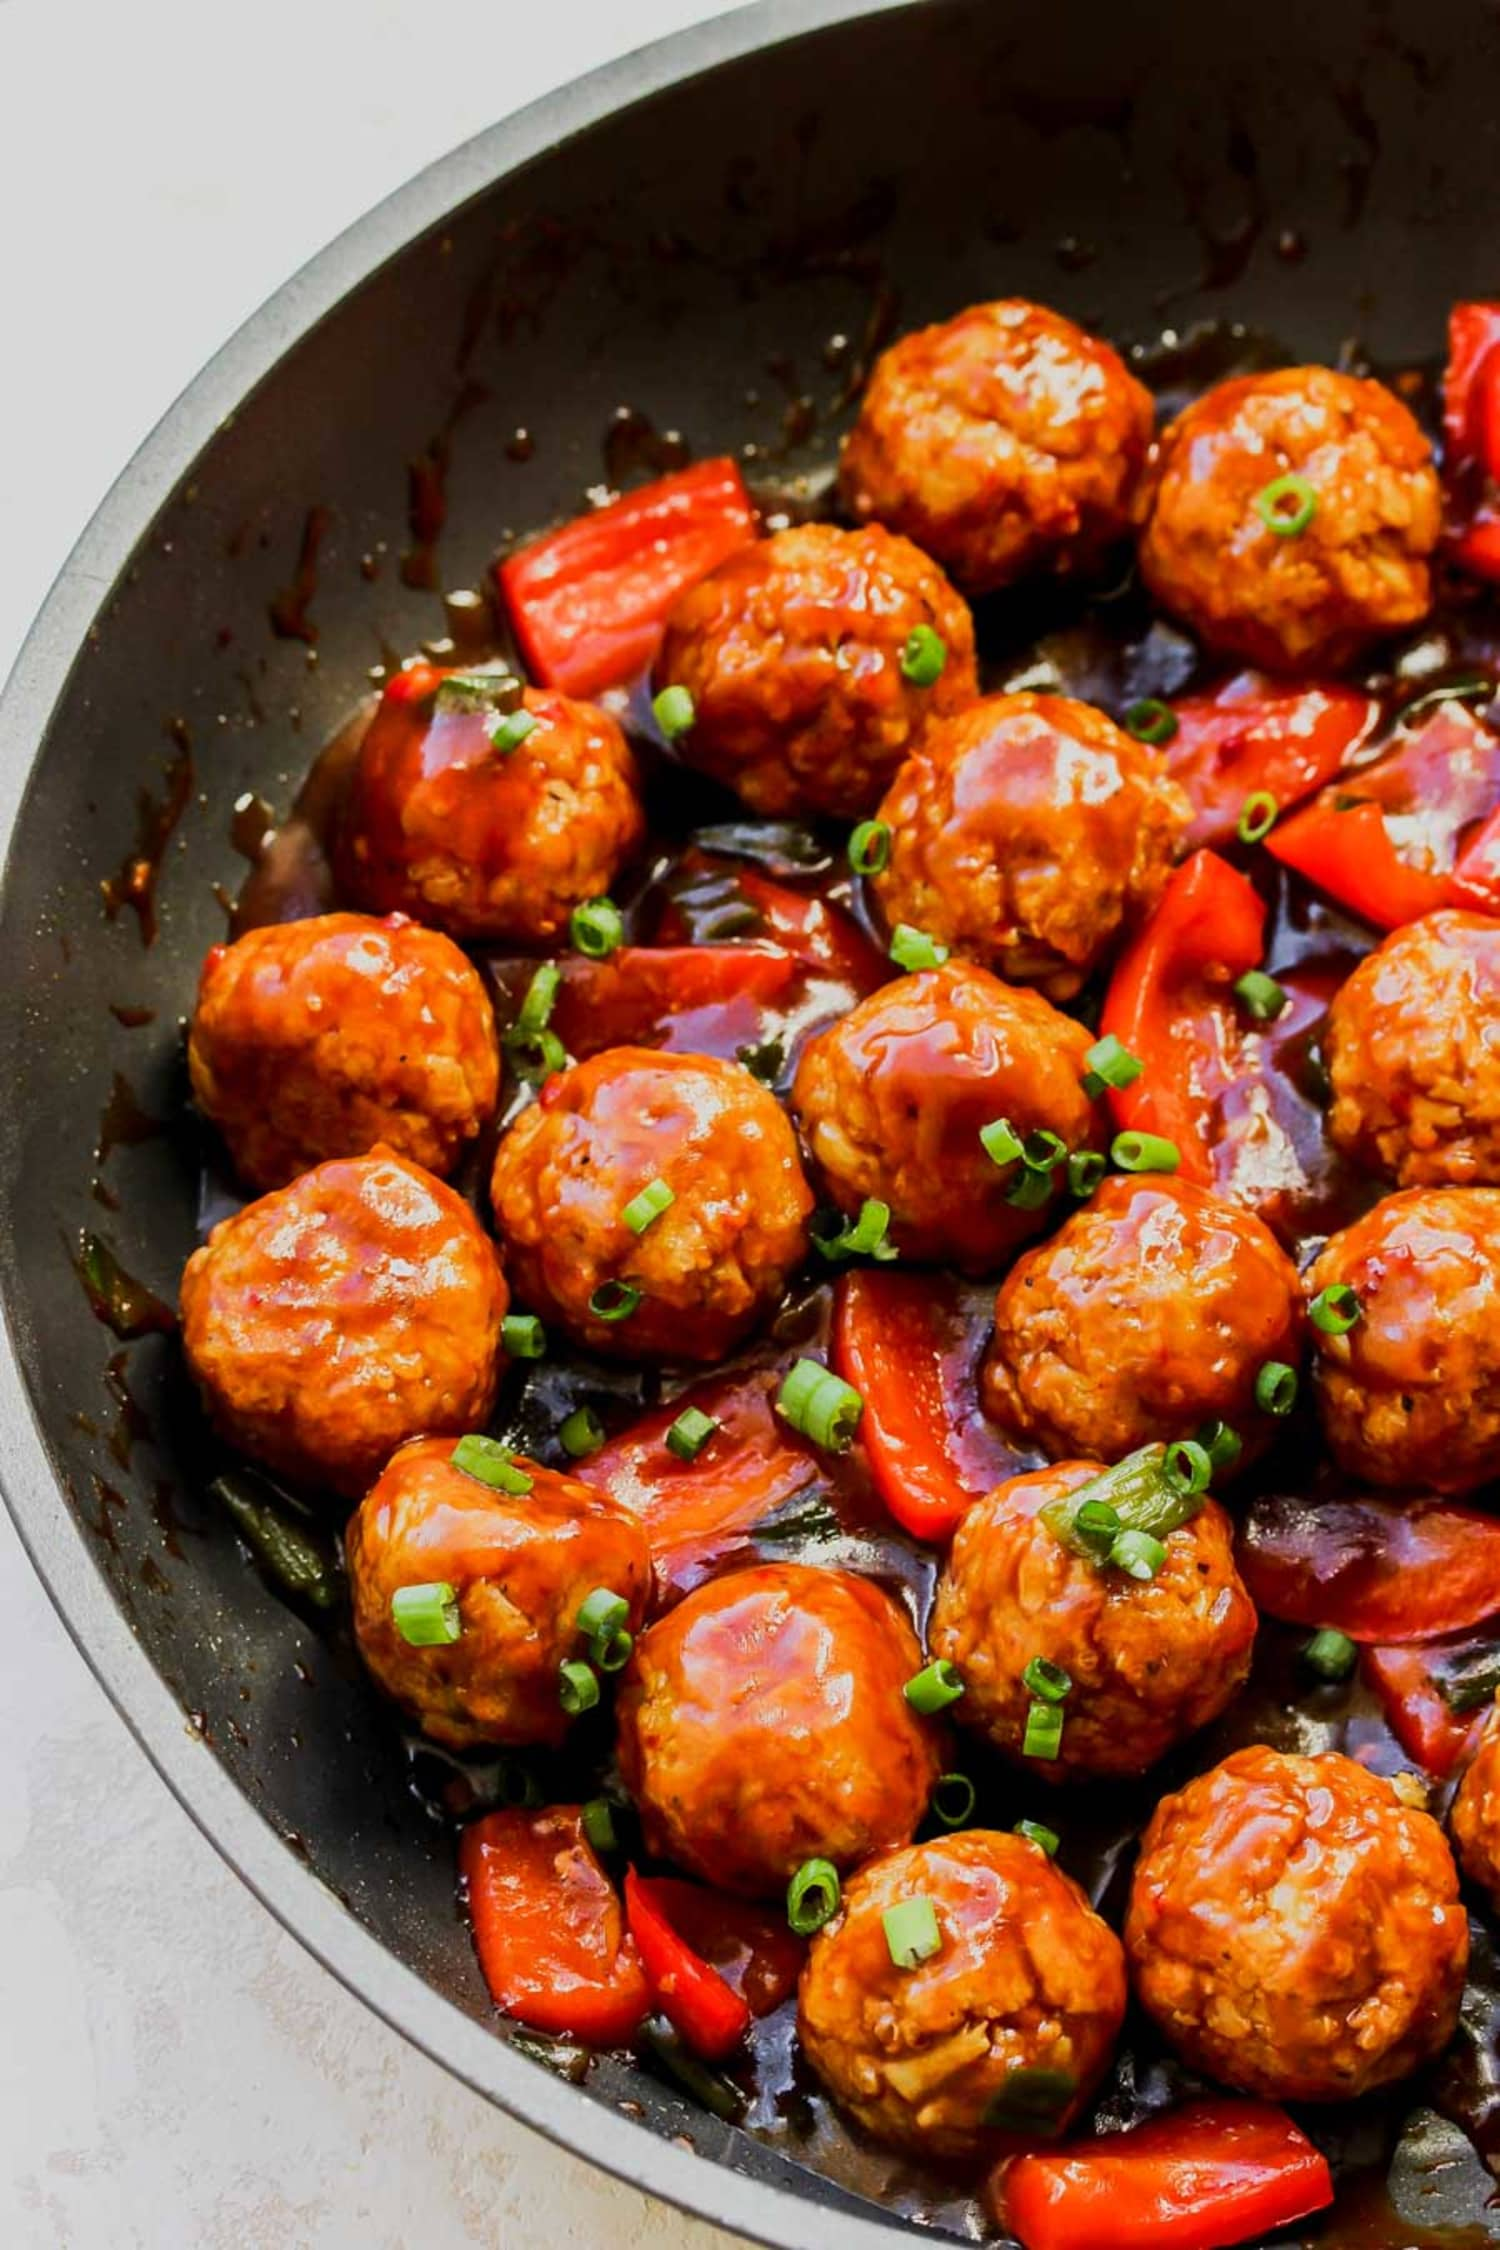 These Cauliflower Meatballs Are a Creative Twist on a Classic